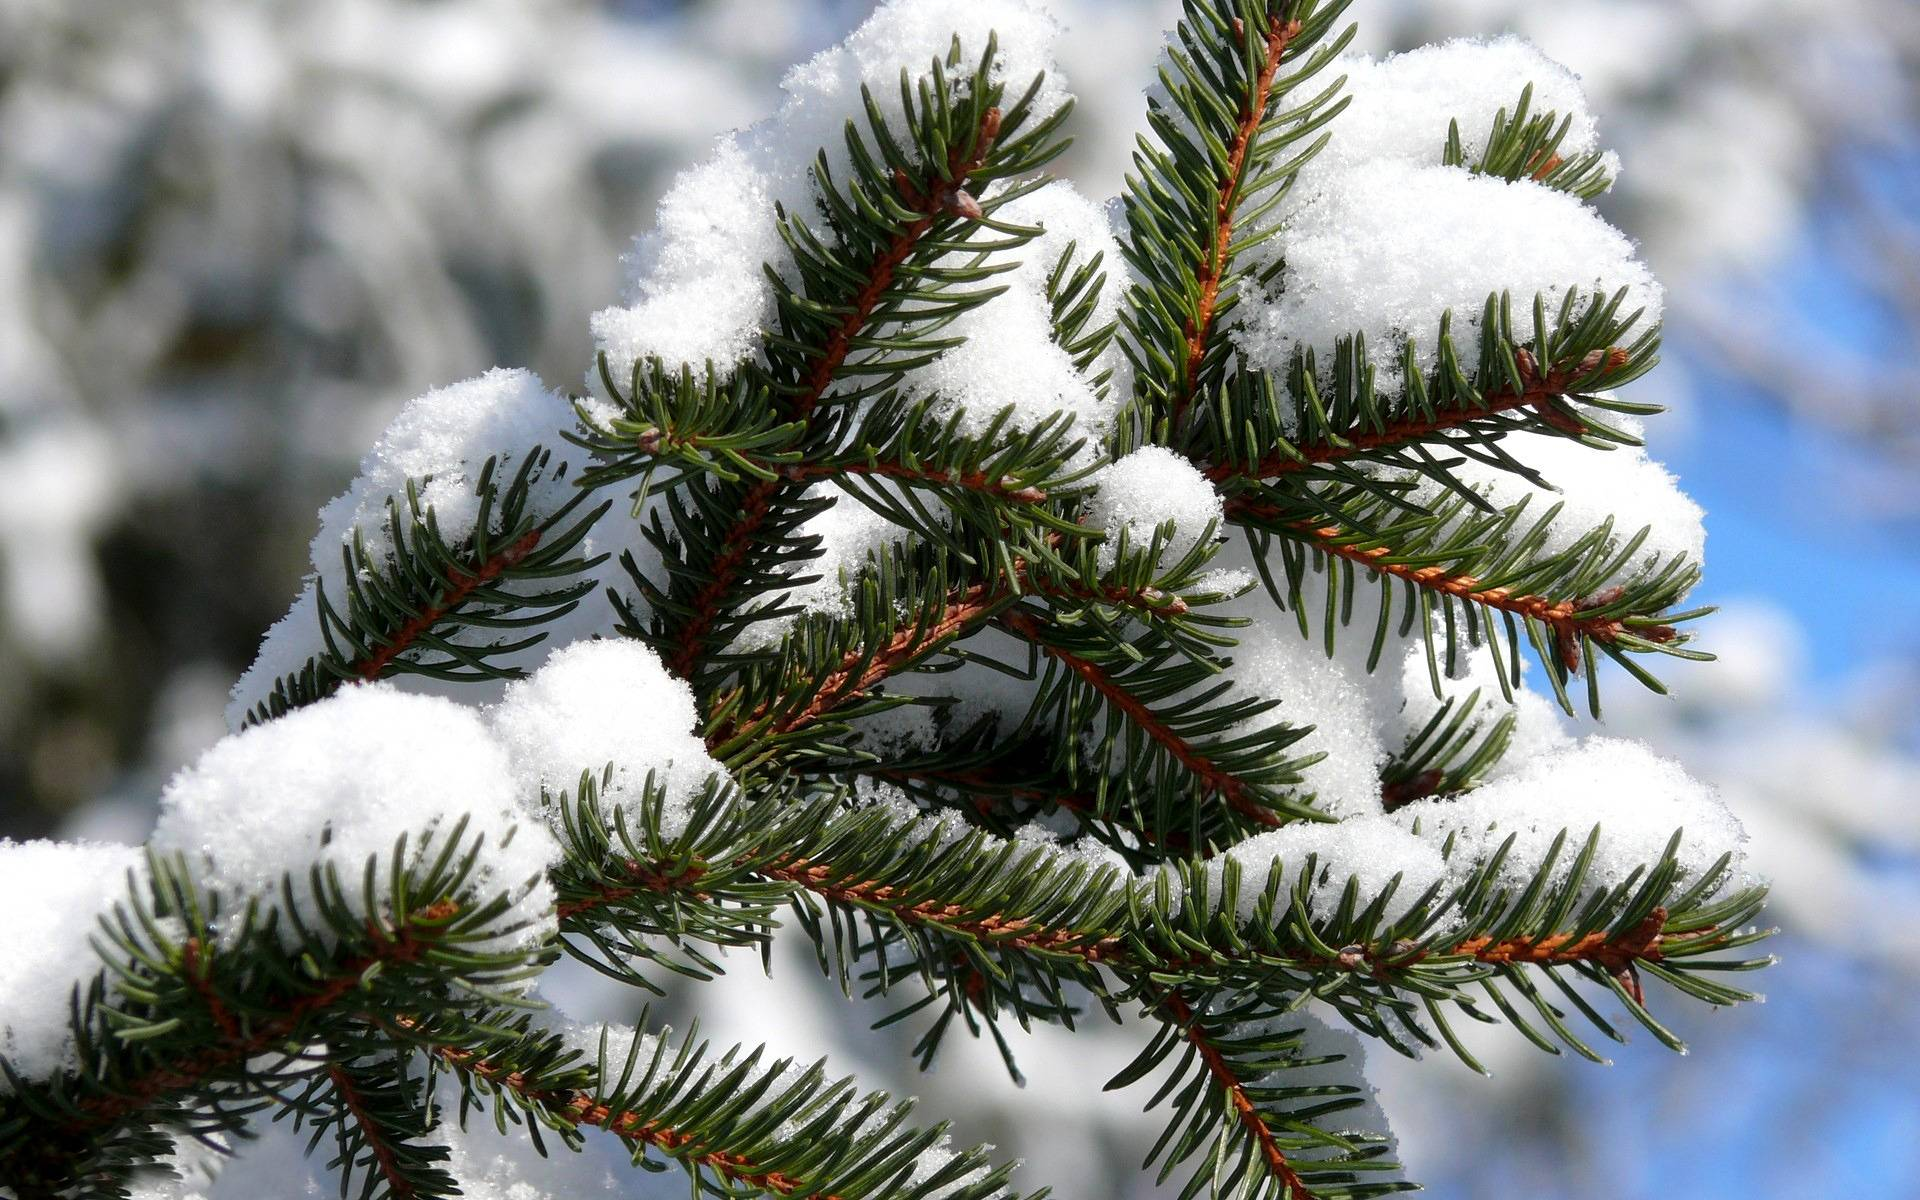 Snowy fir branch wallpaper - 1046958